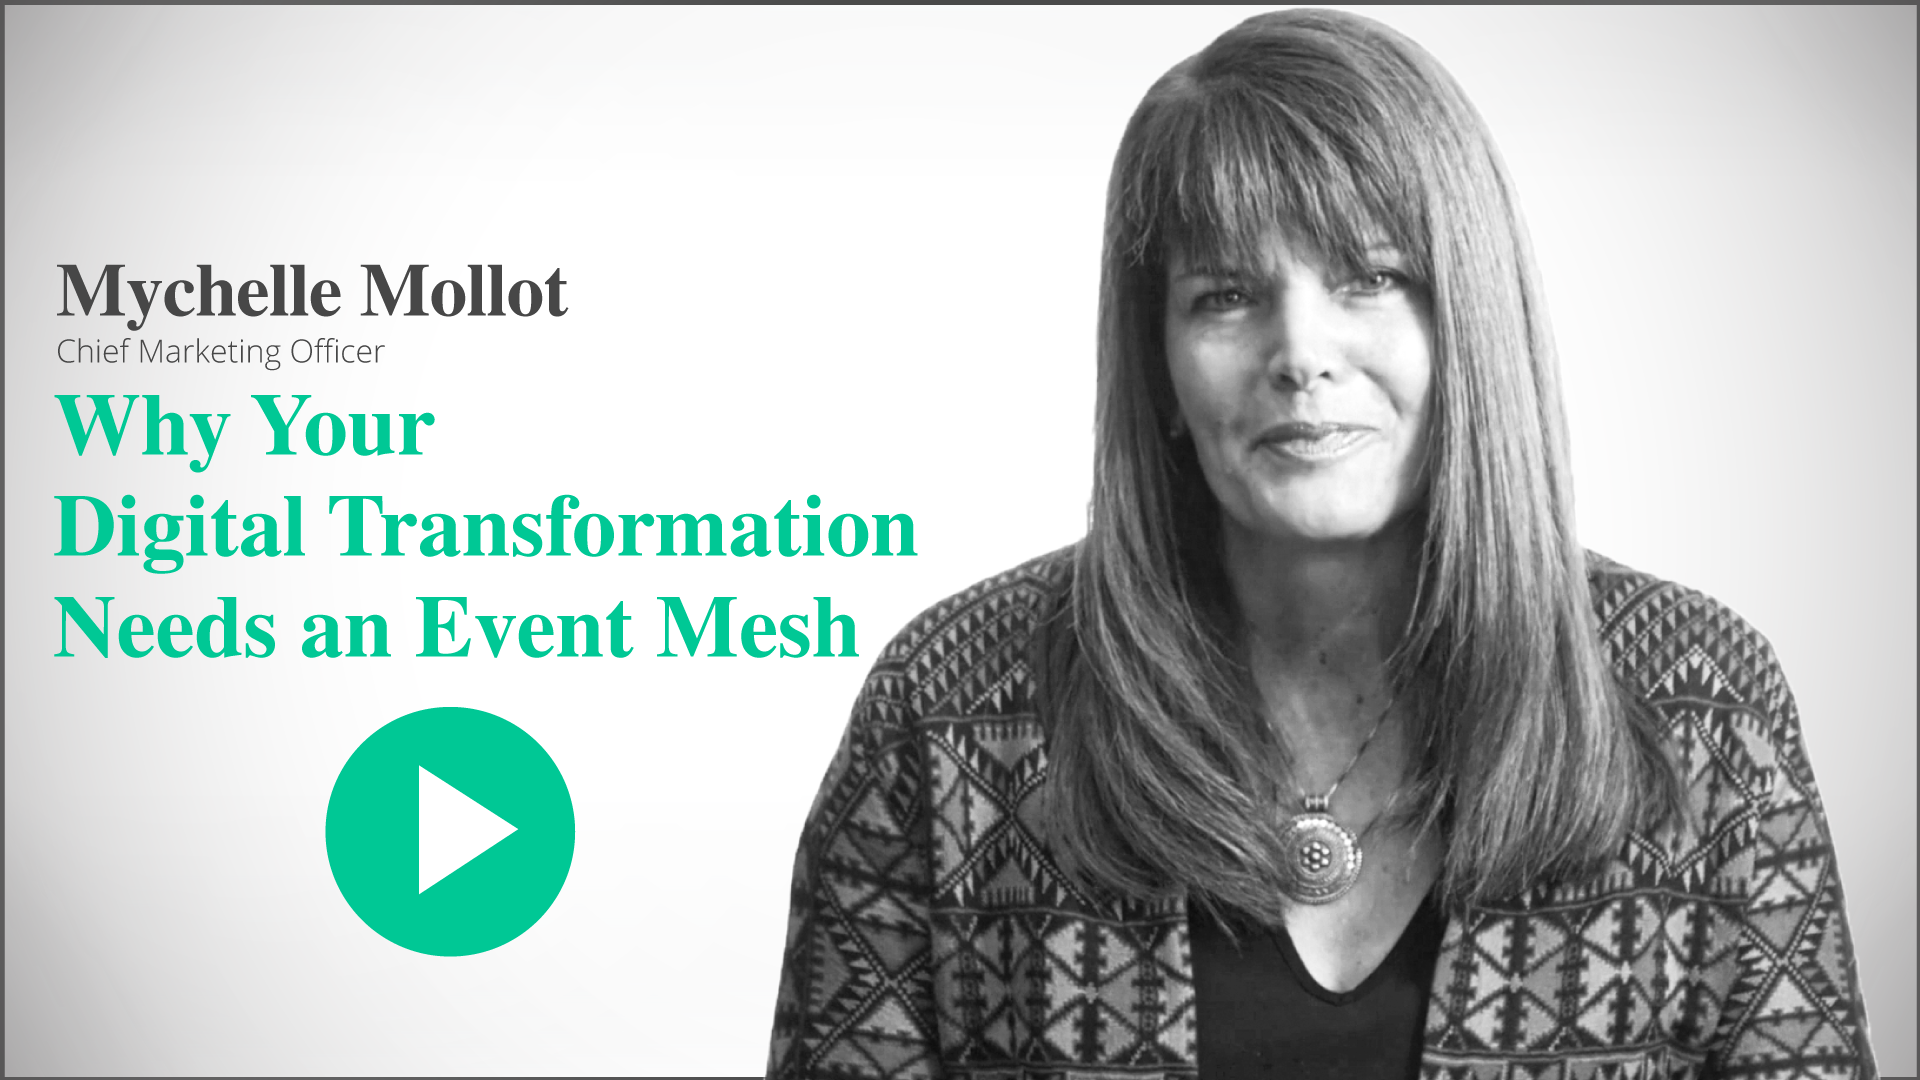 Enter the event mesh